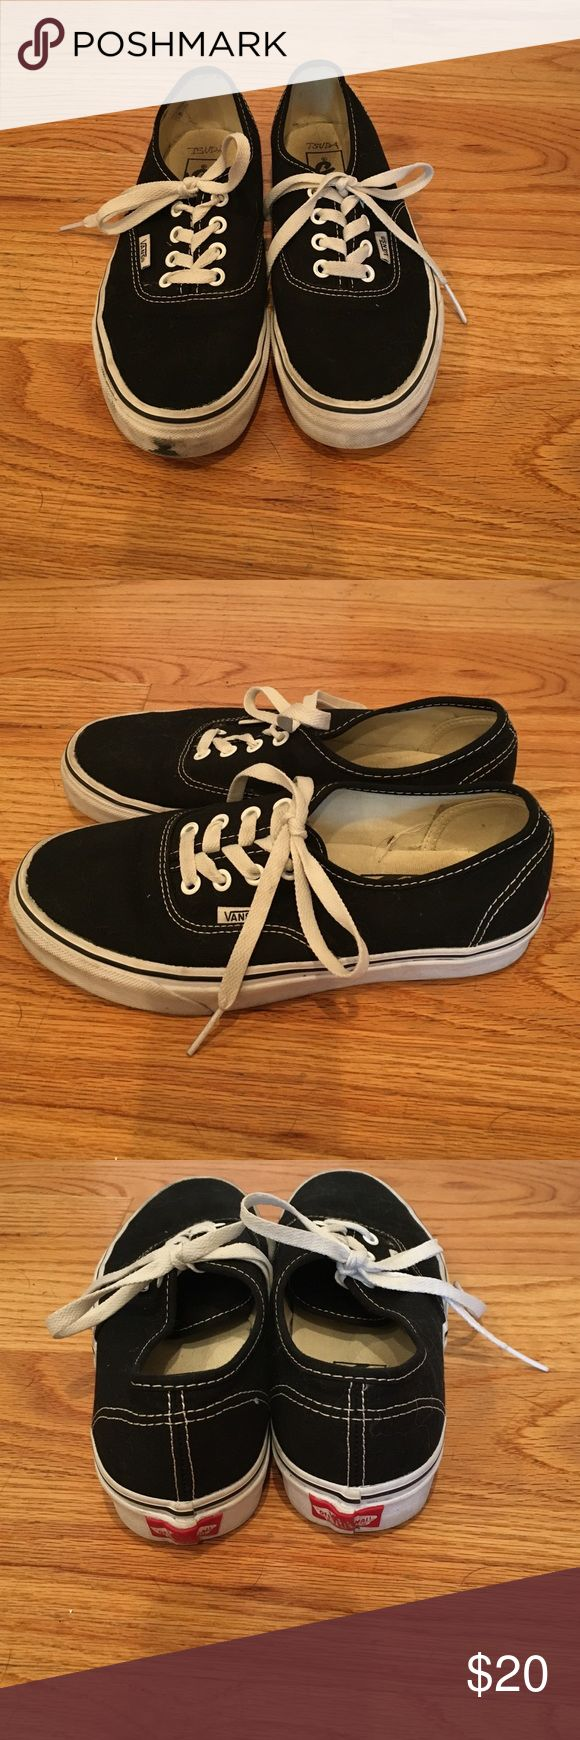 Vans Authentic Black Shoes - Women's Size 7 Good condition black vans. Small scuff on front sole. Vans Shoes Sneakers